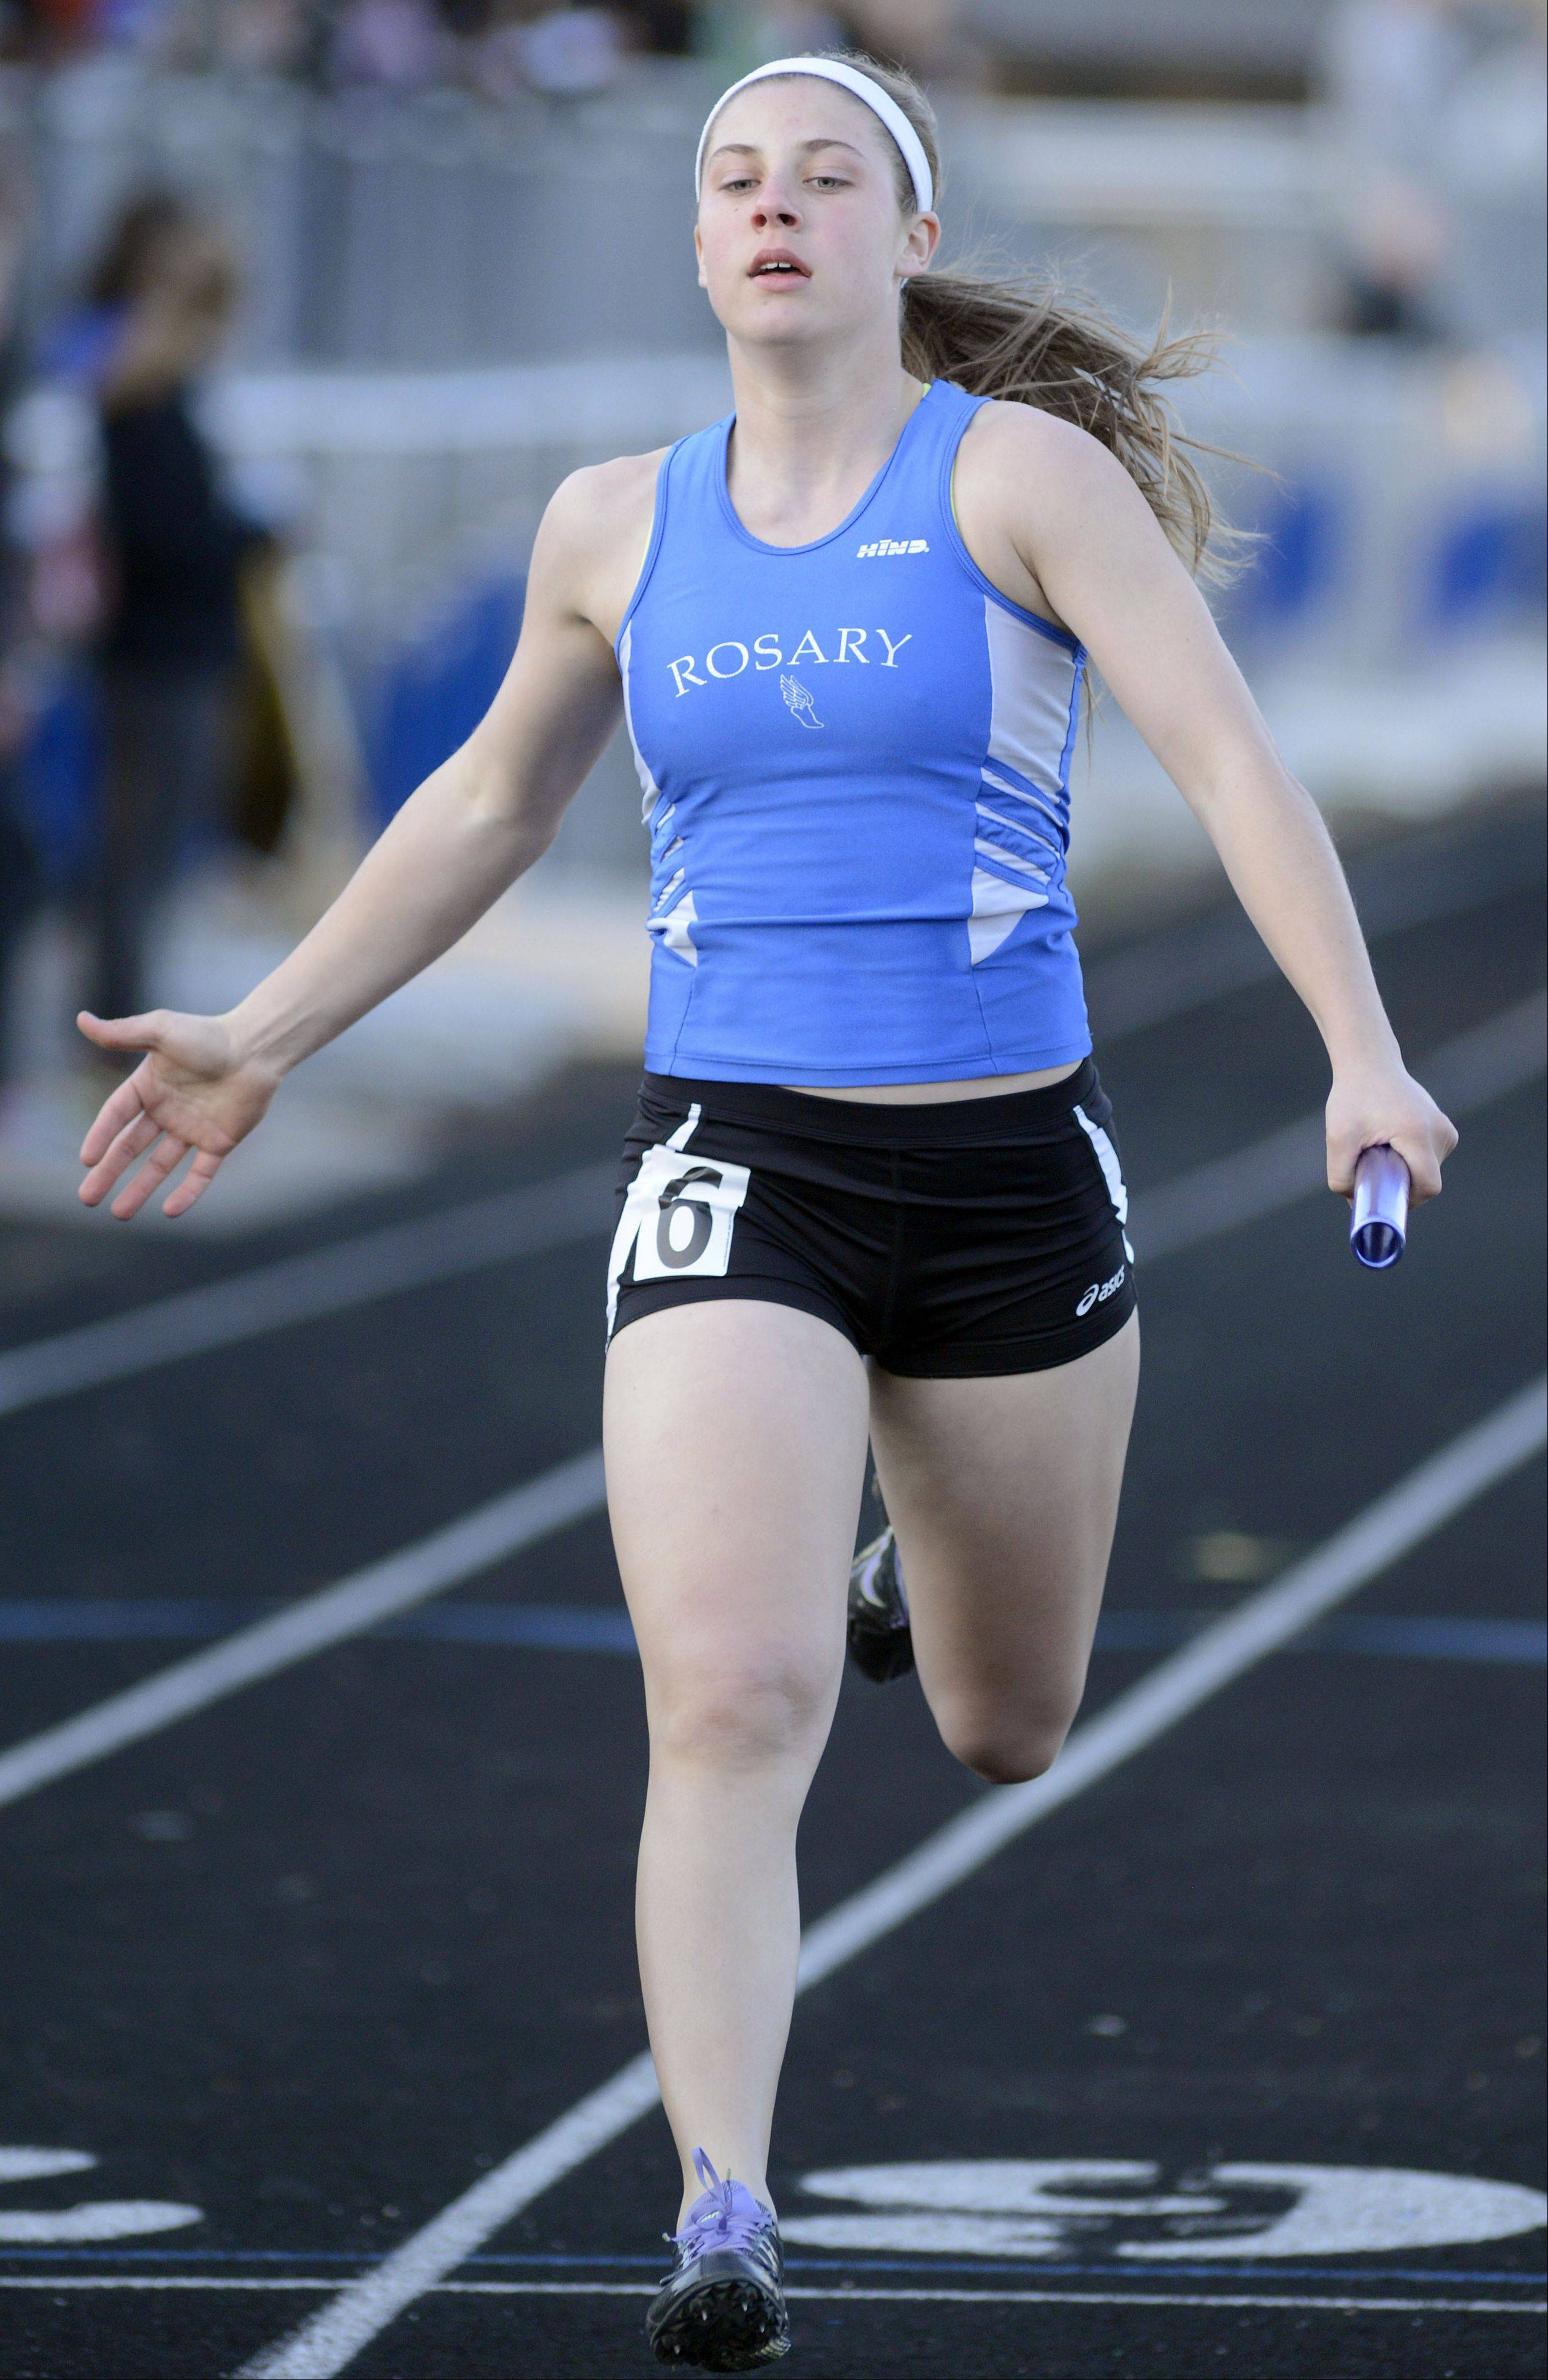 Rosary's Megan Conlin seals the deal for the Royals taking first place in the final heat of the 4 x 200 meter relay at the Kane County Invitational track in Geneva meet on Friday, April 26.